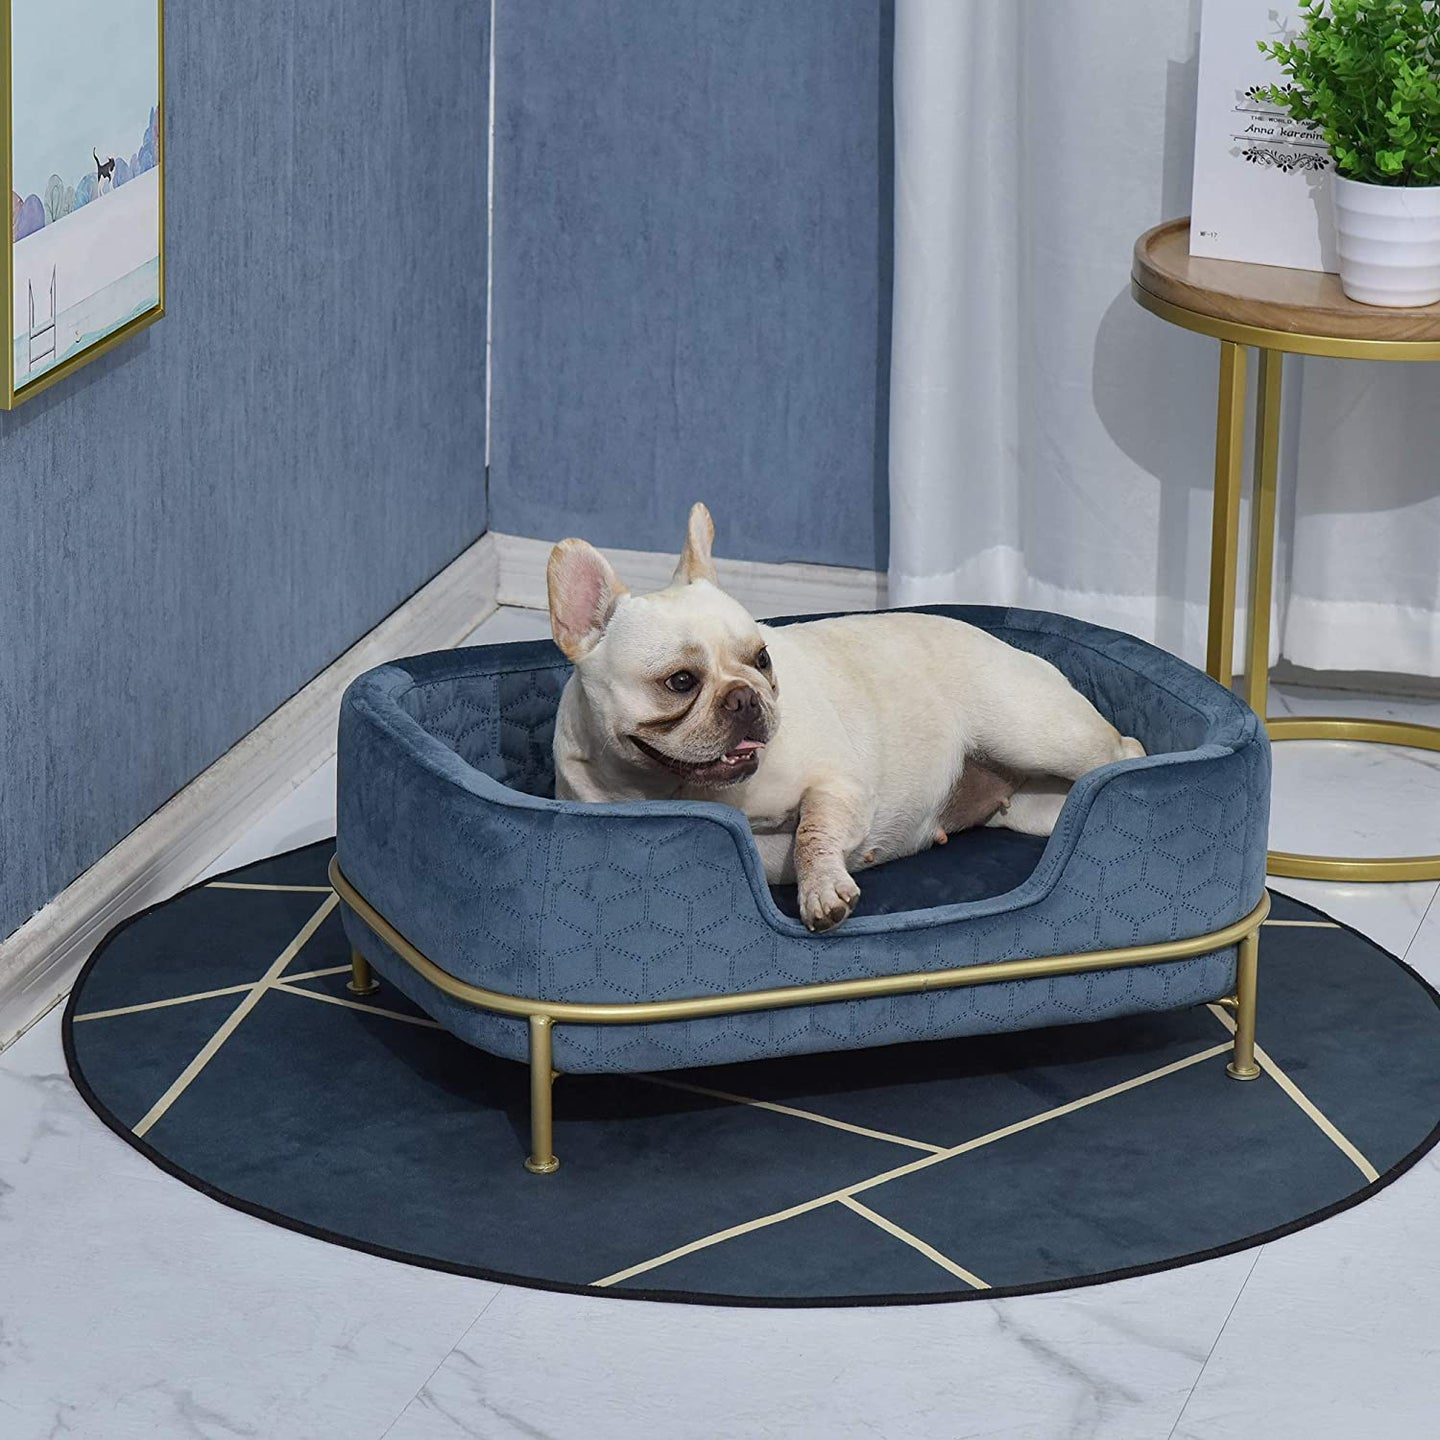 PawHut Pet Sofa Dog Bed Couch Cat Kitten Sponge Removable Cushion Lounge Metal Stand Elegant Bed Seat Furniture Blue 63.5 x 43 x 24.5 cm